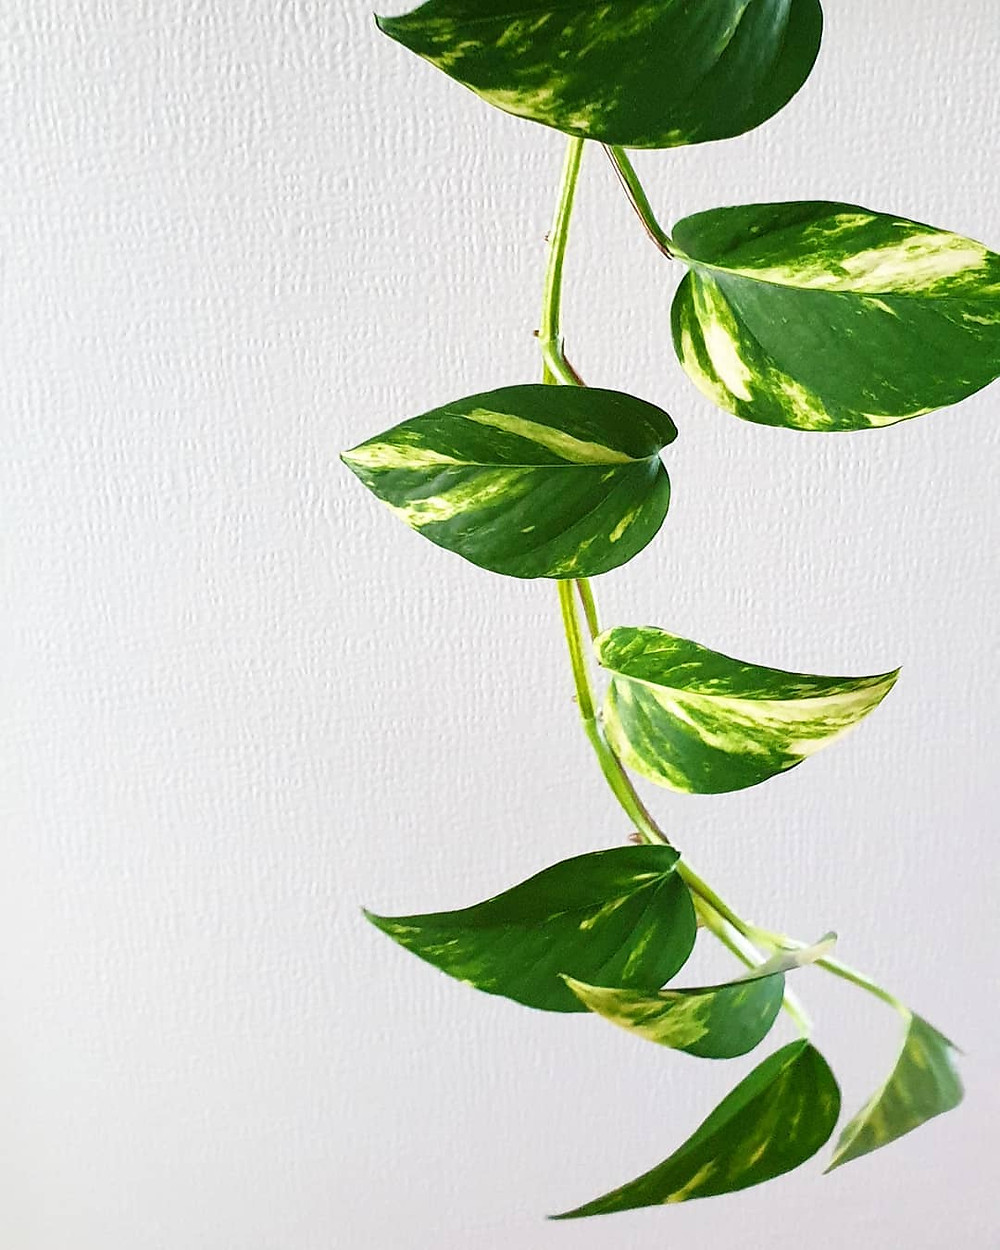 Golden Pothos Air Purifying Plants